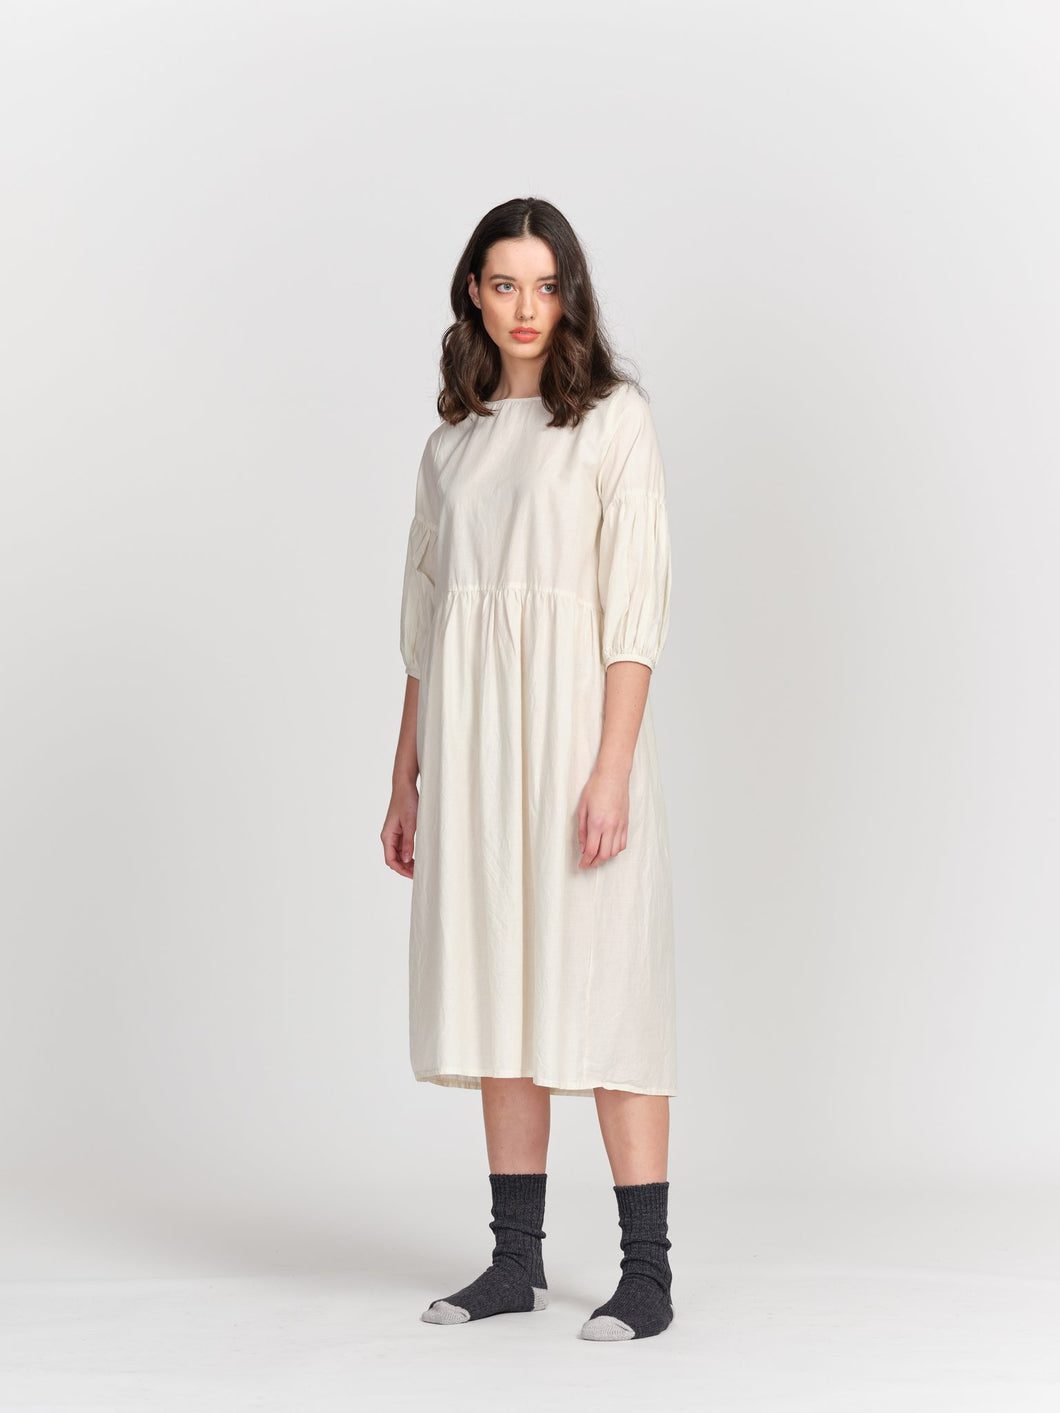 Bebe Dress-Creme Organic Cotton